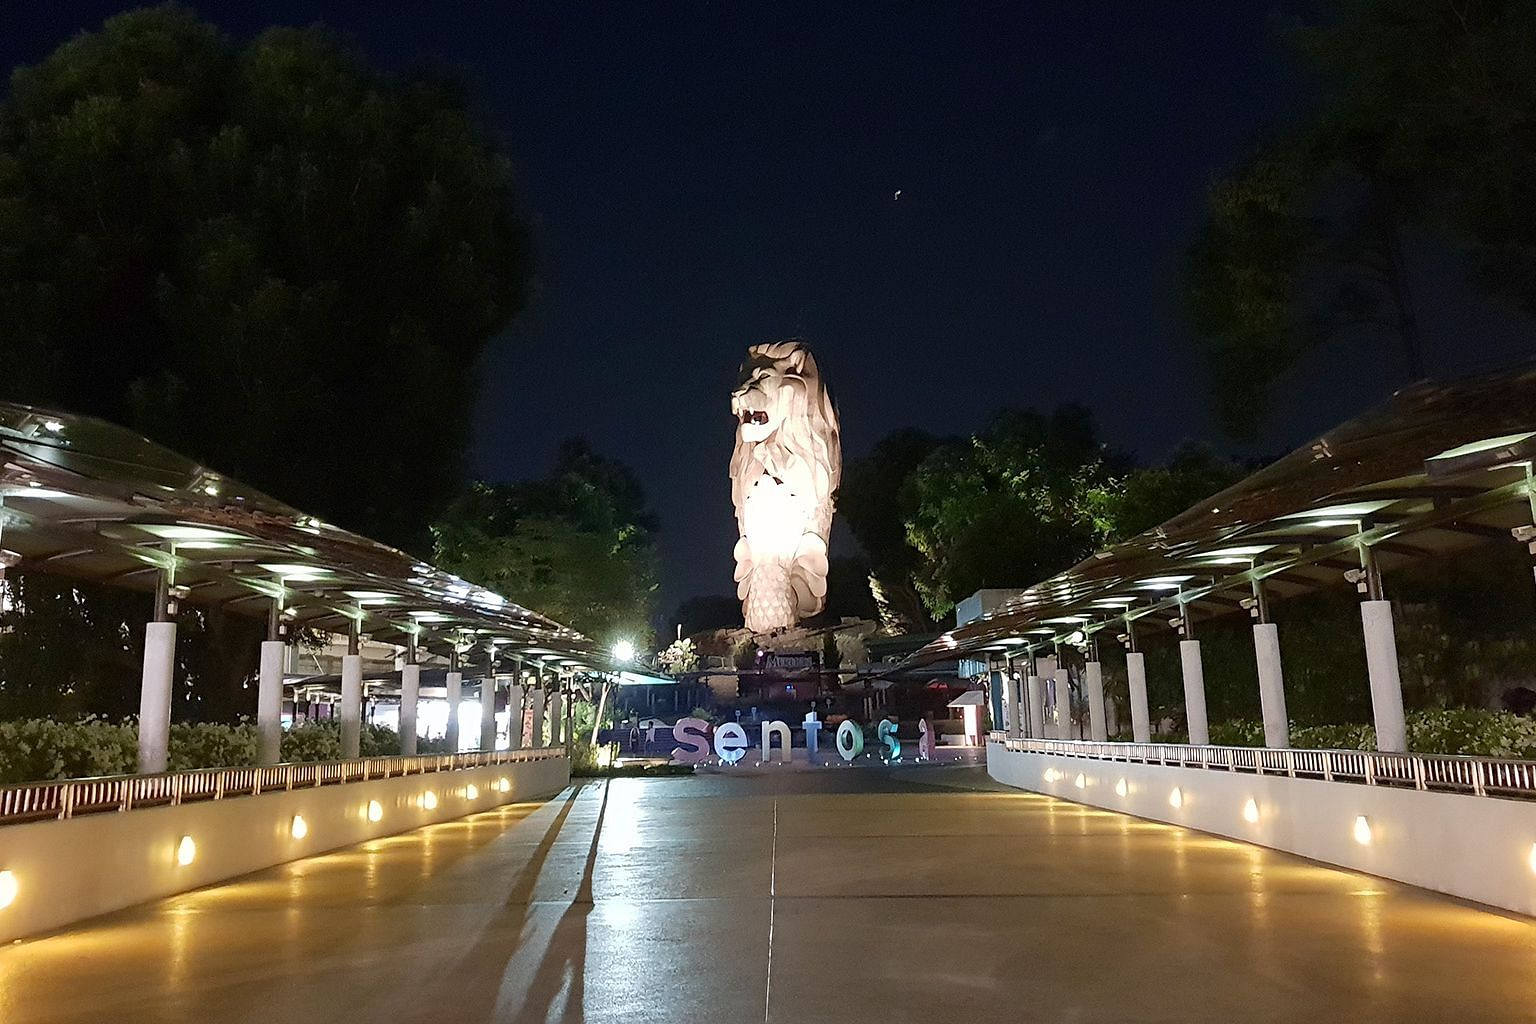 The Merlion at Sentosa. Taken using Samsung Galaxy S9+ in Pro mode with f/1.5 aperture.